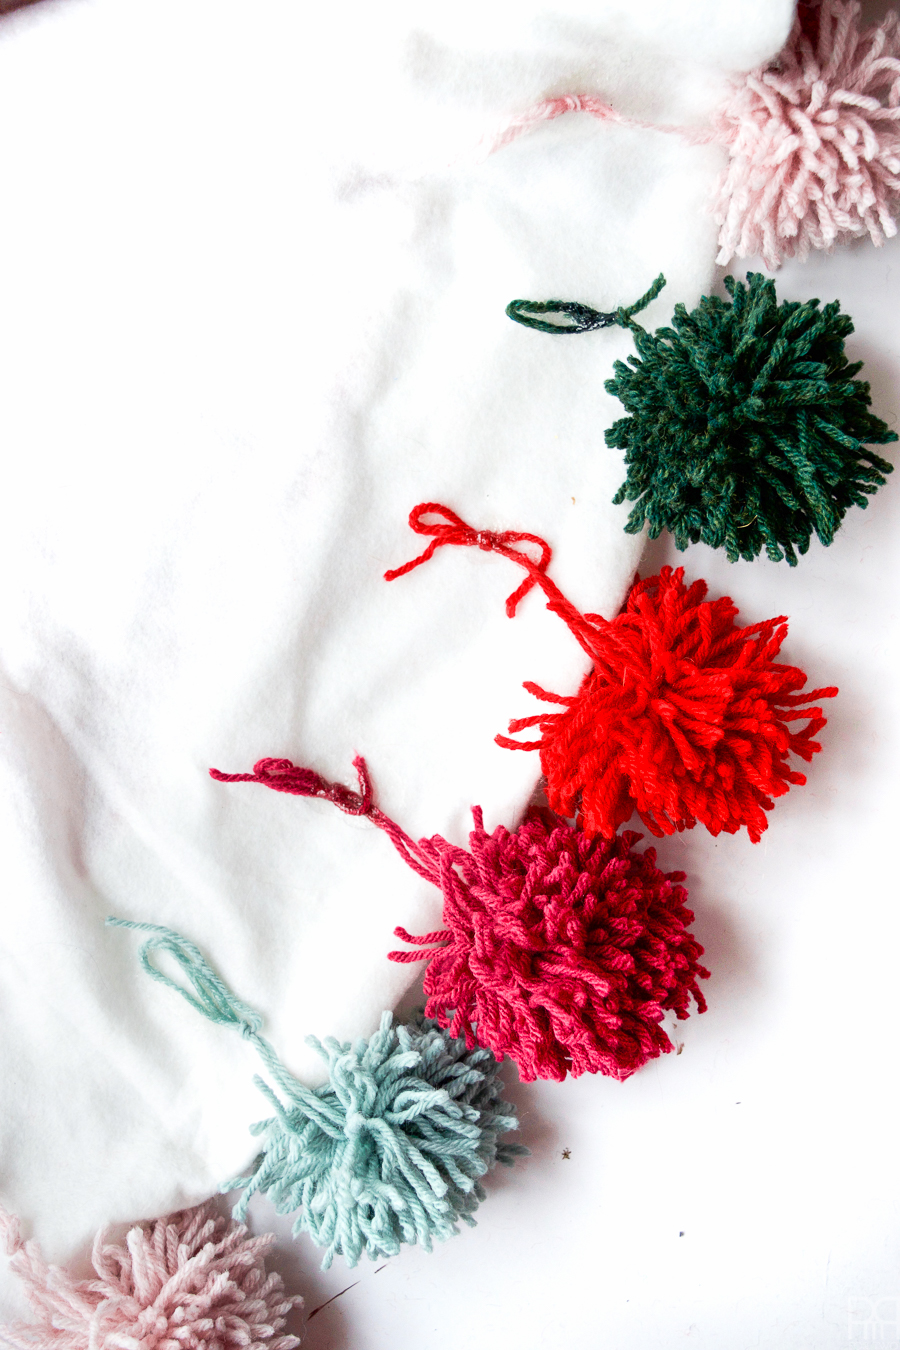 diy-pom-poms-and-tassels-31